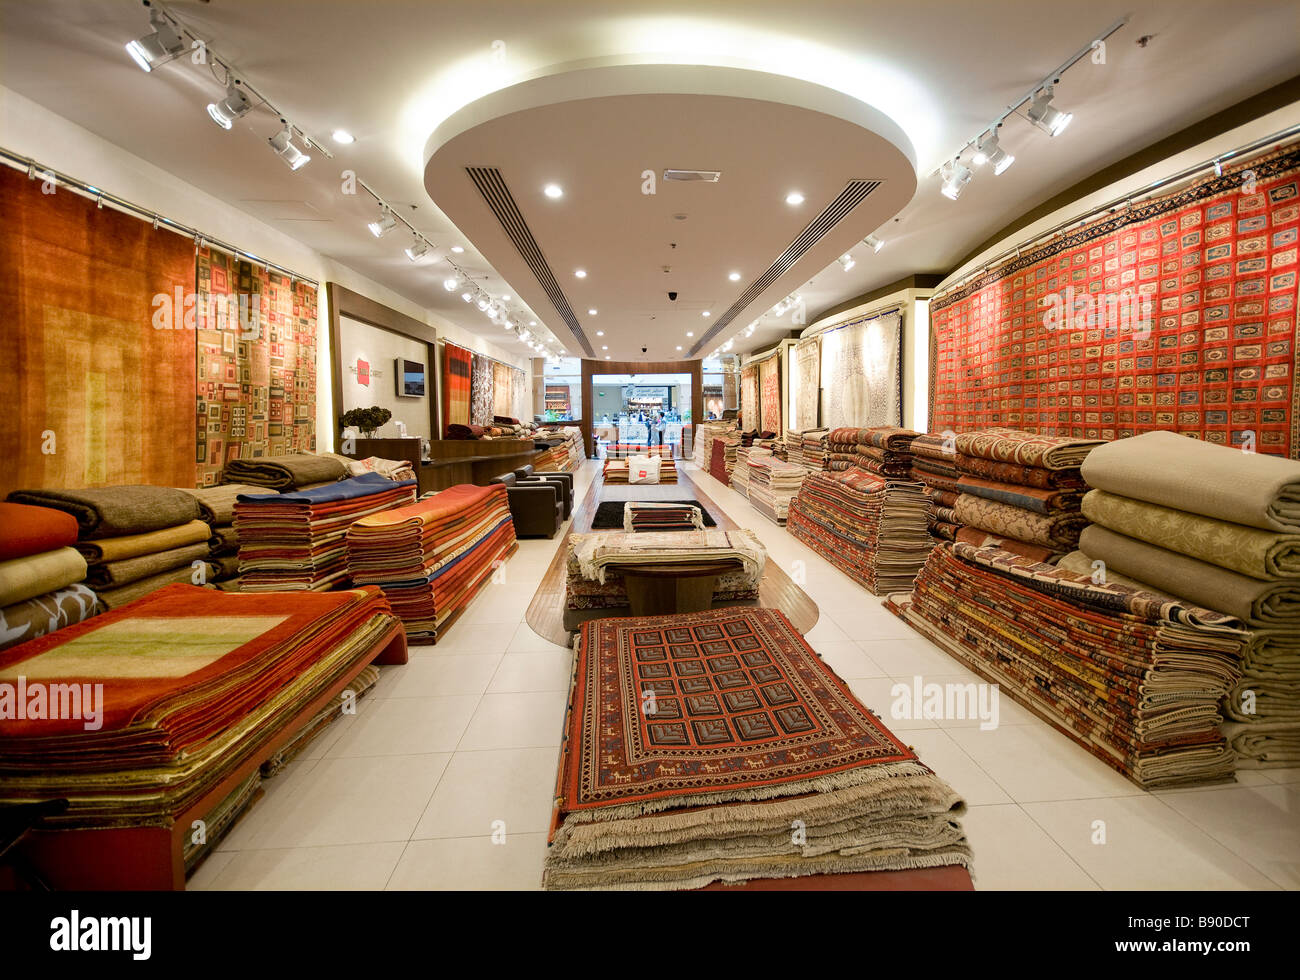 Rug And Carpet Store Shopping Mall Dubai Uae Stock Photo